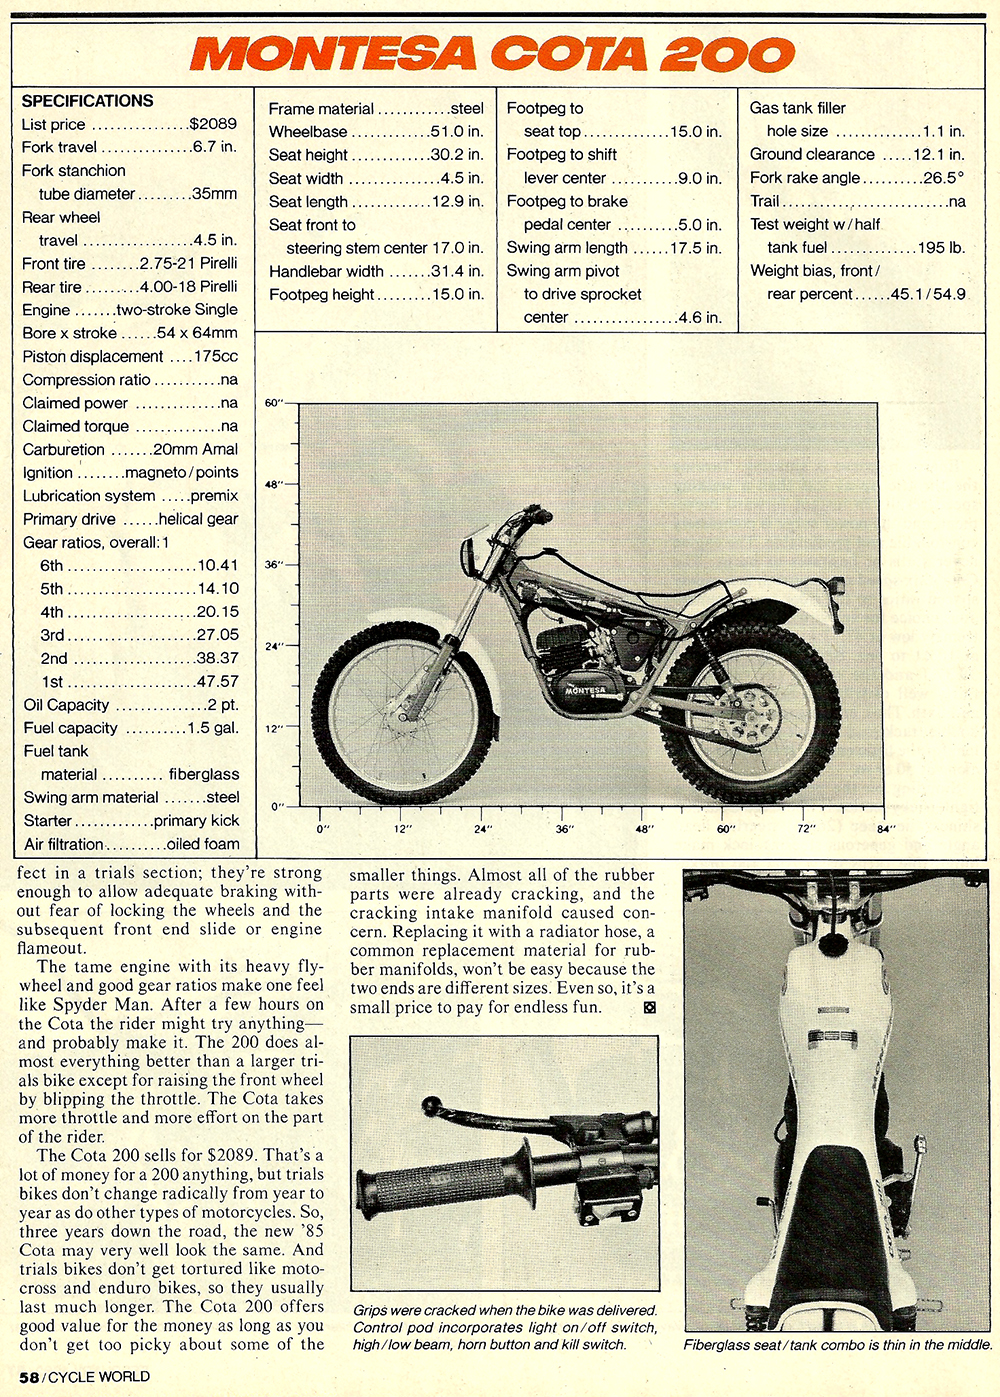 1982 Montesa cota 200 road test 05.jpg